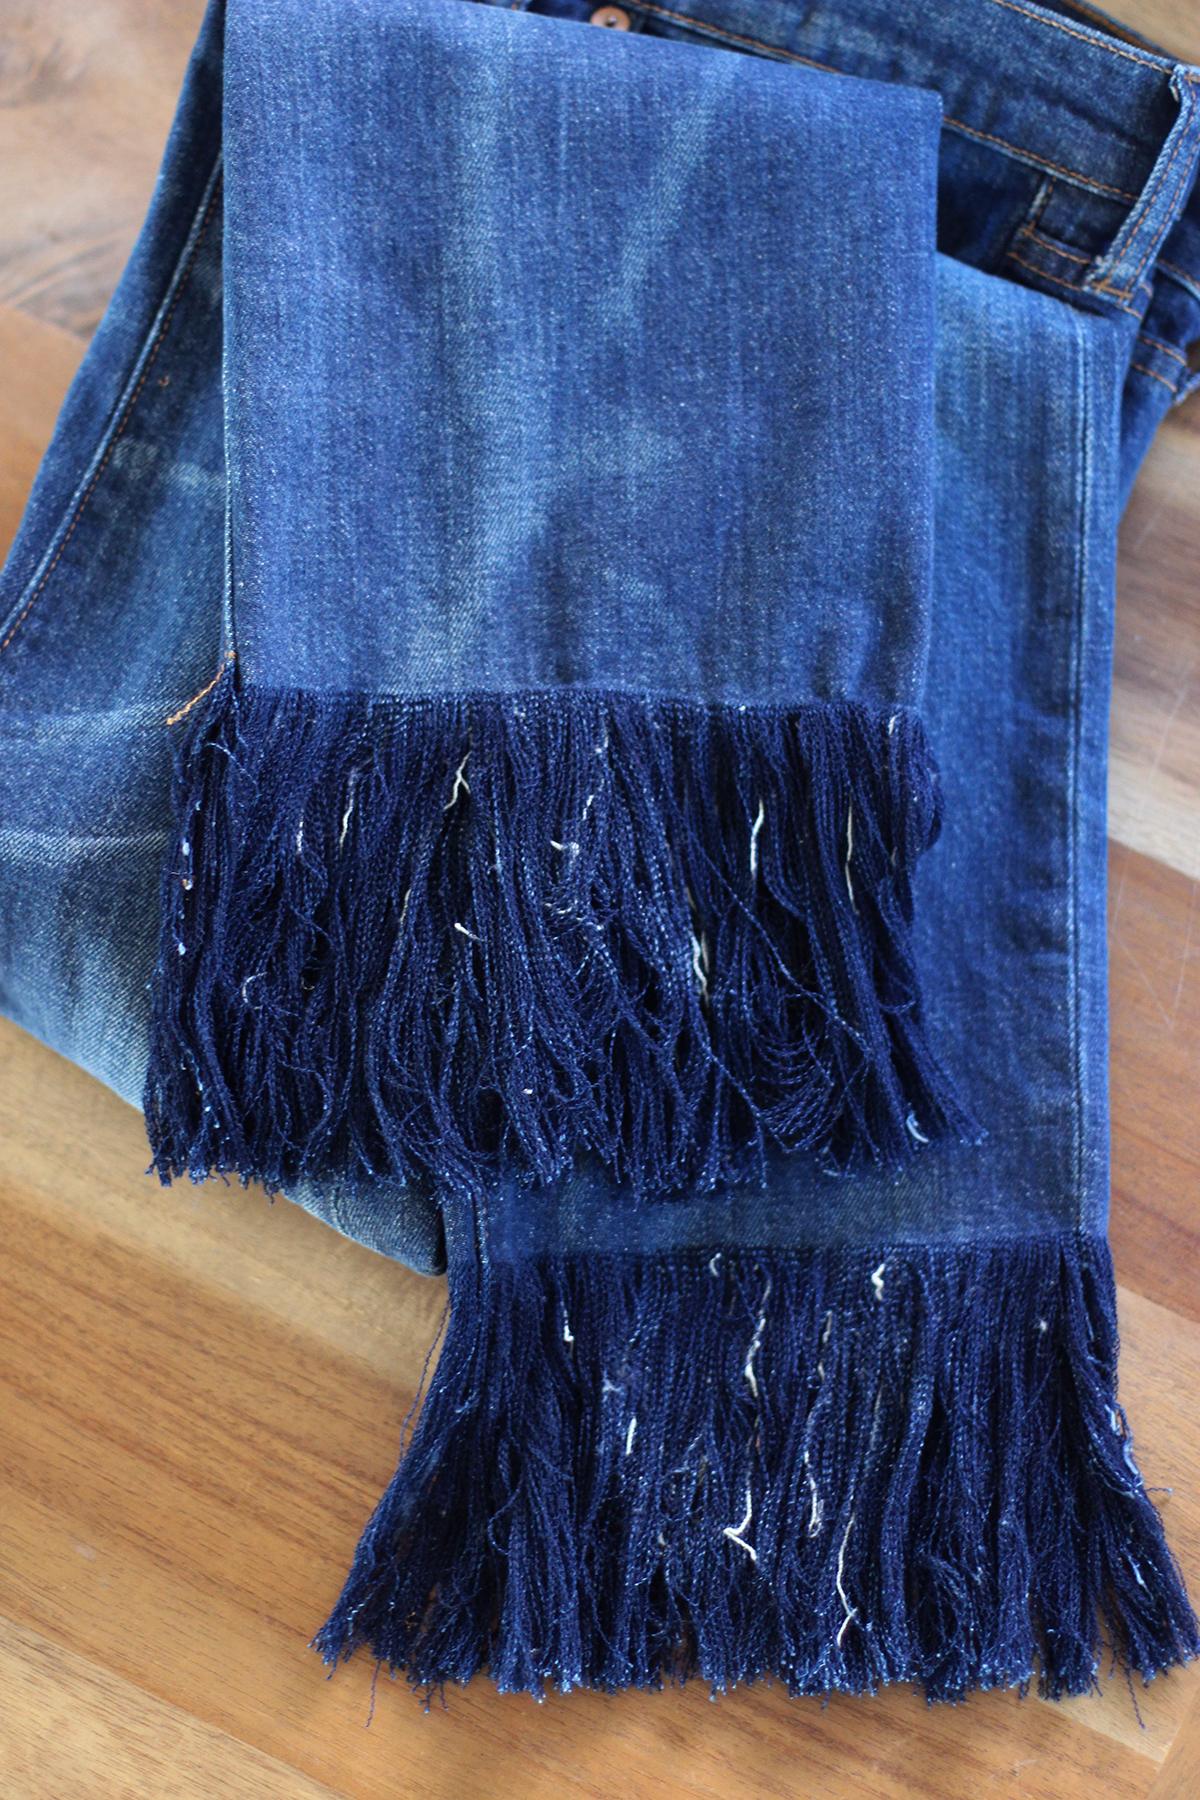 DIY Frayed Denim u2013 Honestly WTF